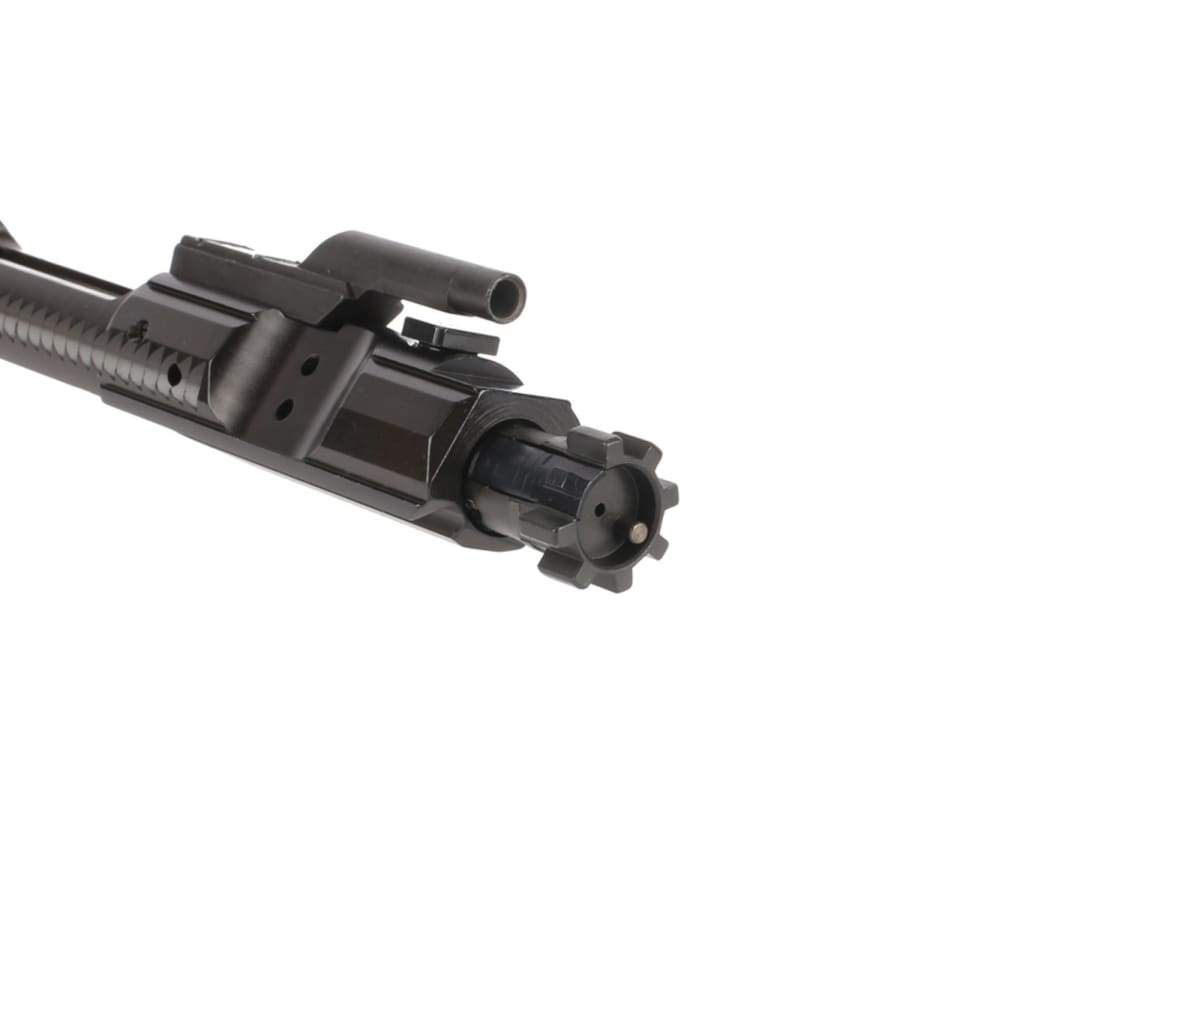 Bear Creek Arsenal 6 5 Grendel Type II Bolt Carrier Group (BCG)